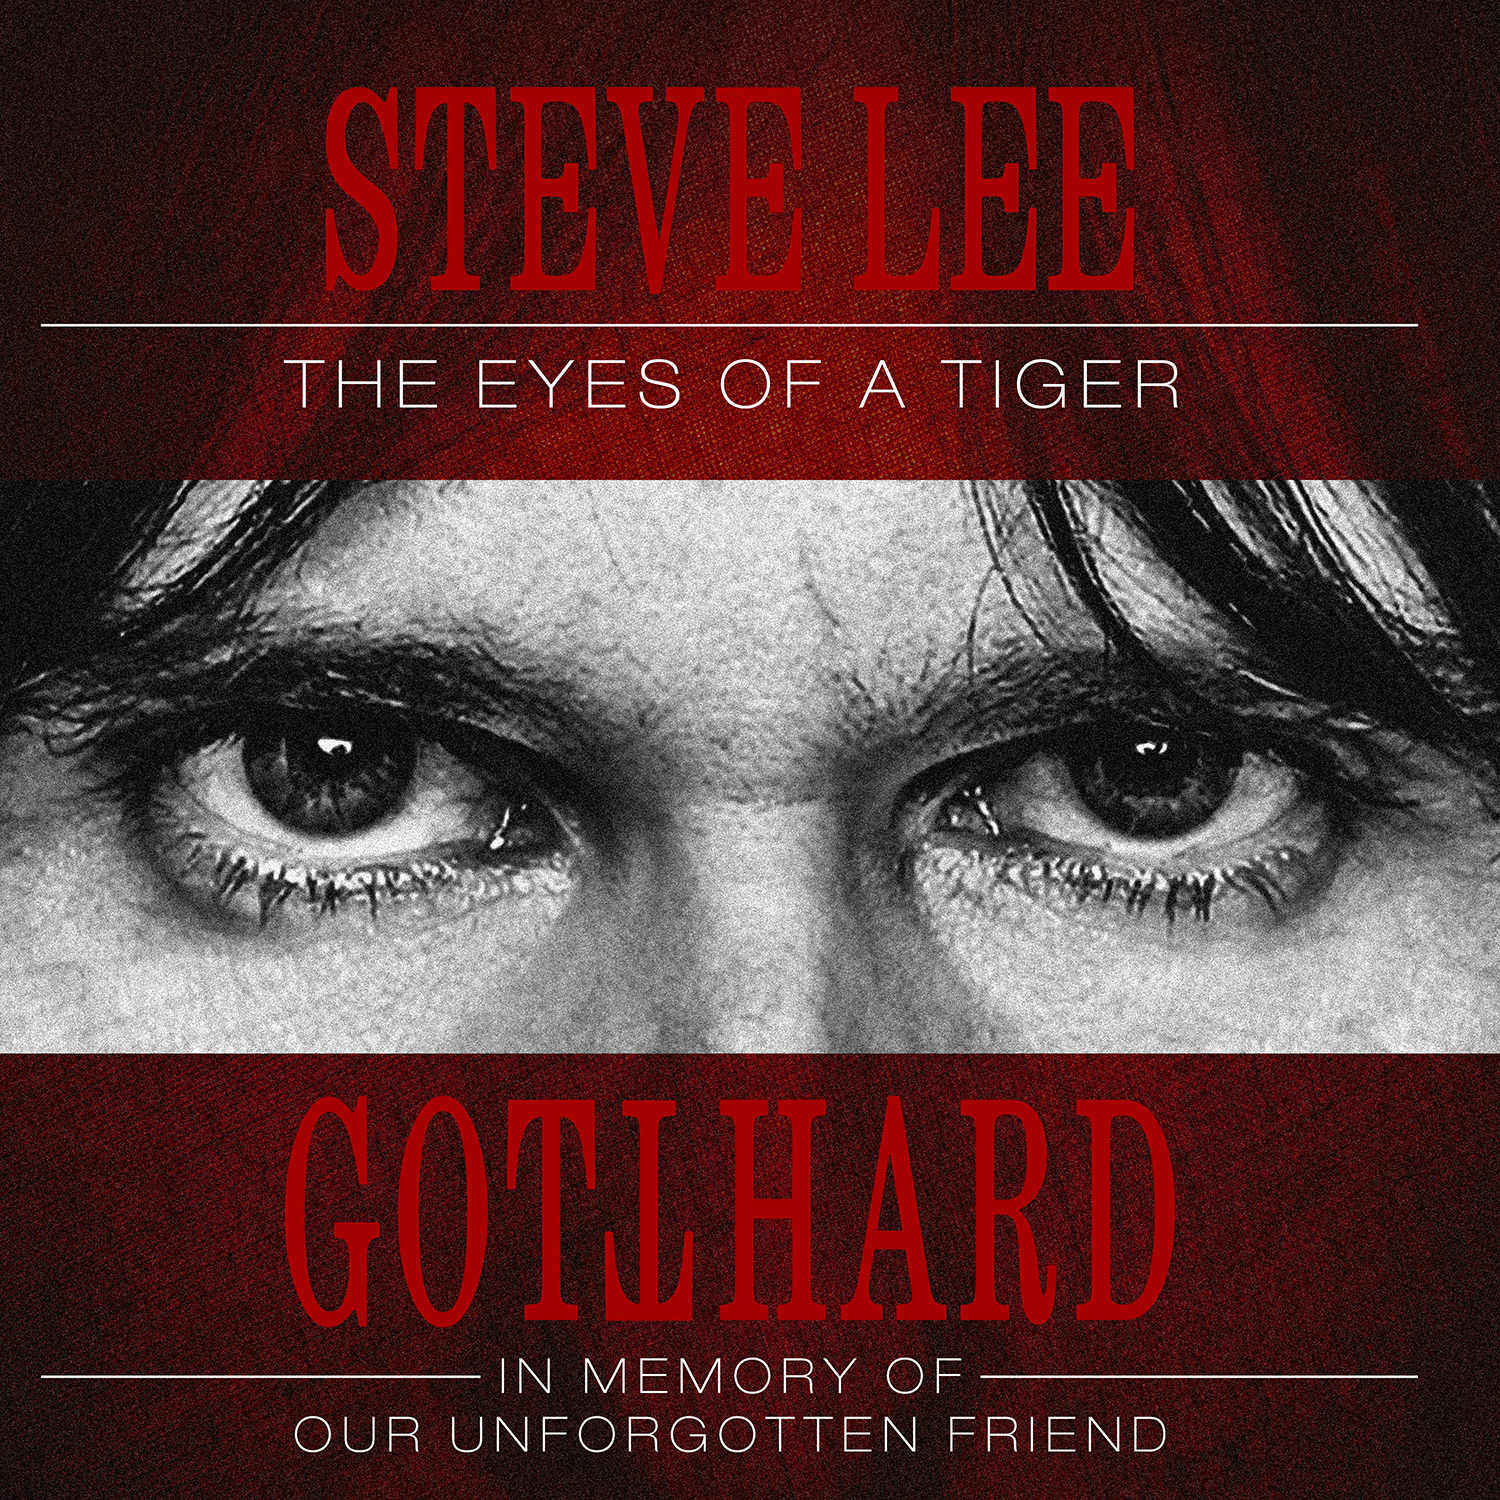 gotthard-the-eyes-of-a-tiger